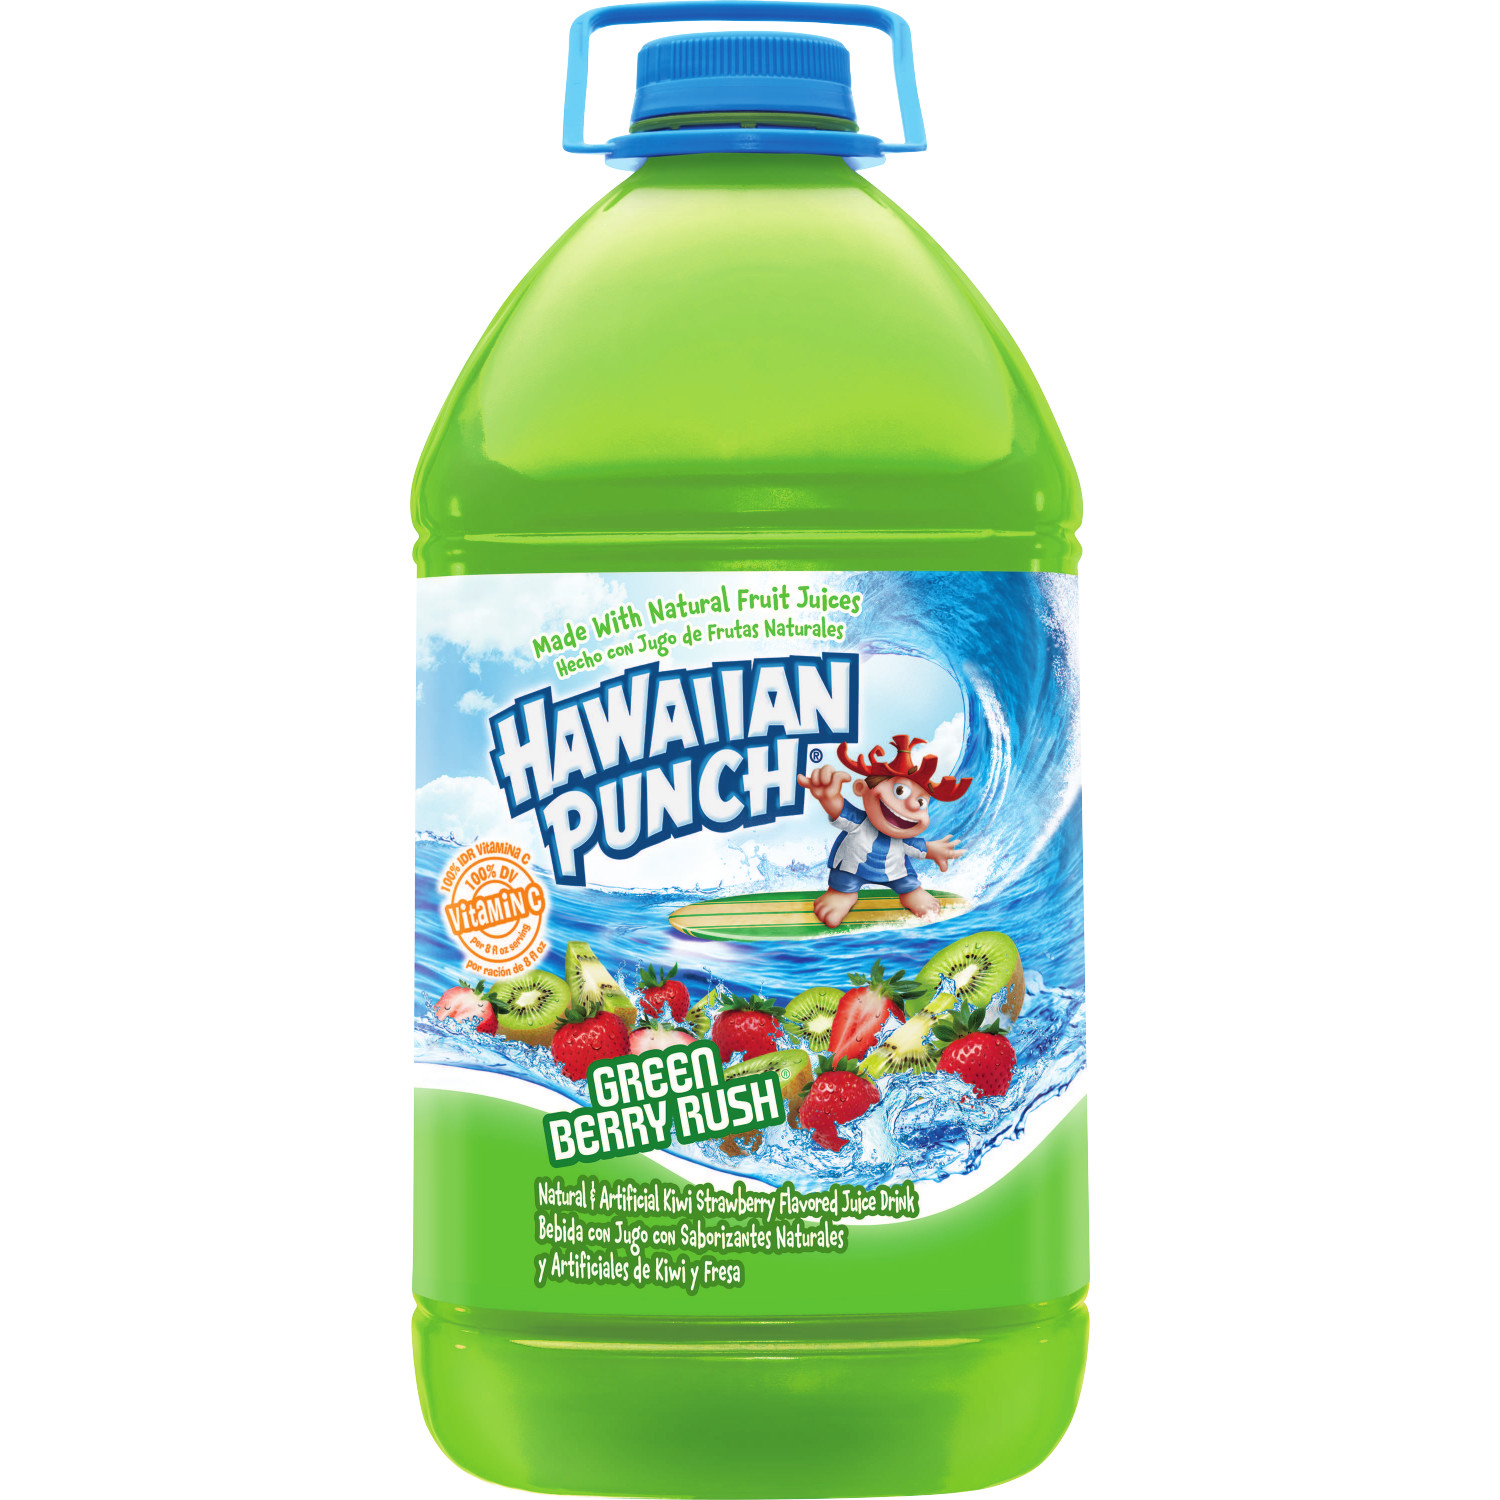 Hawaiian Punch Green Berry Rush, Juice Drink, 1 gal bottle